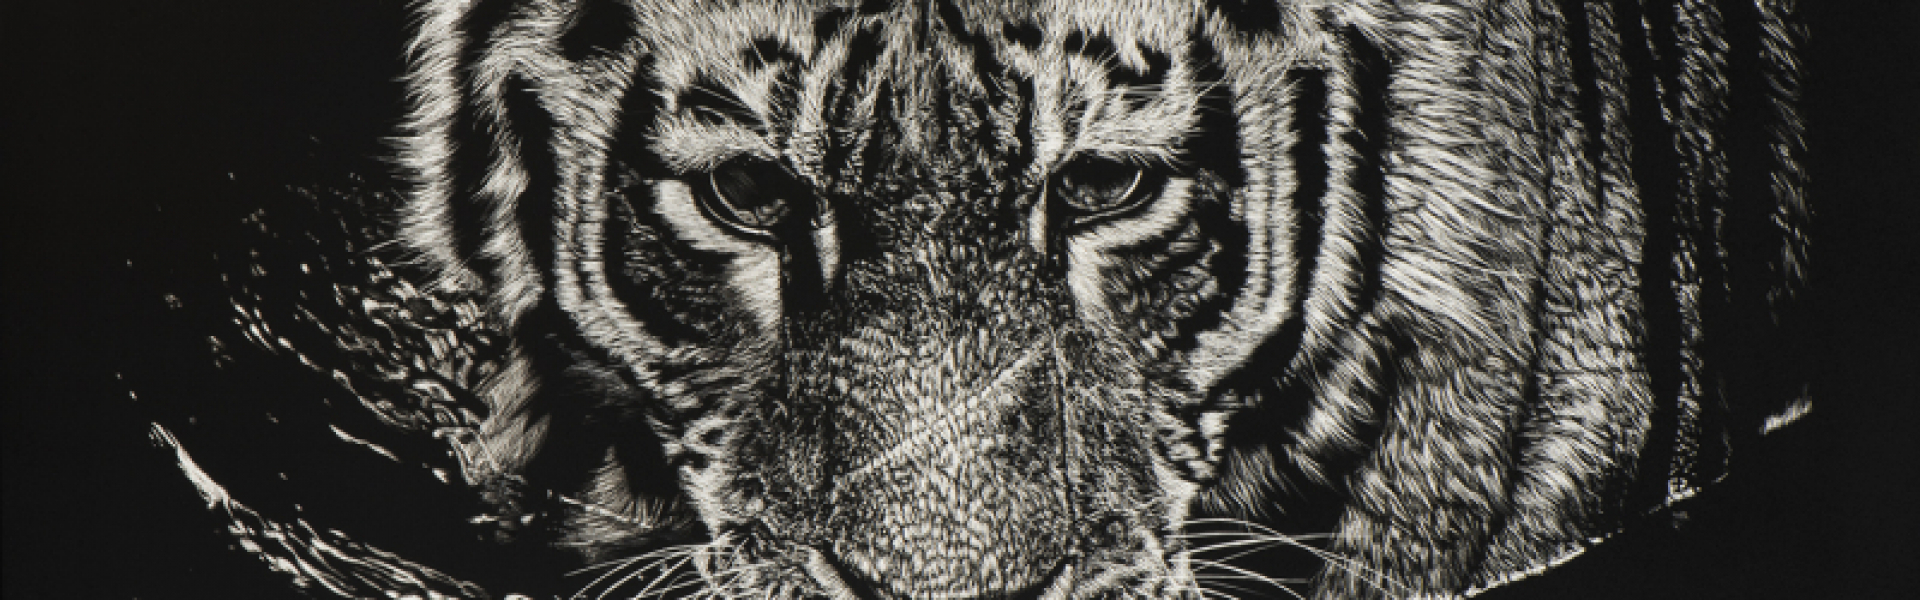 banner_Nathan-Cole-The-Tiger-Swims-at-Night-2019.20210519205439.jpg